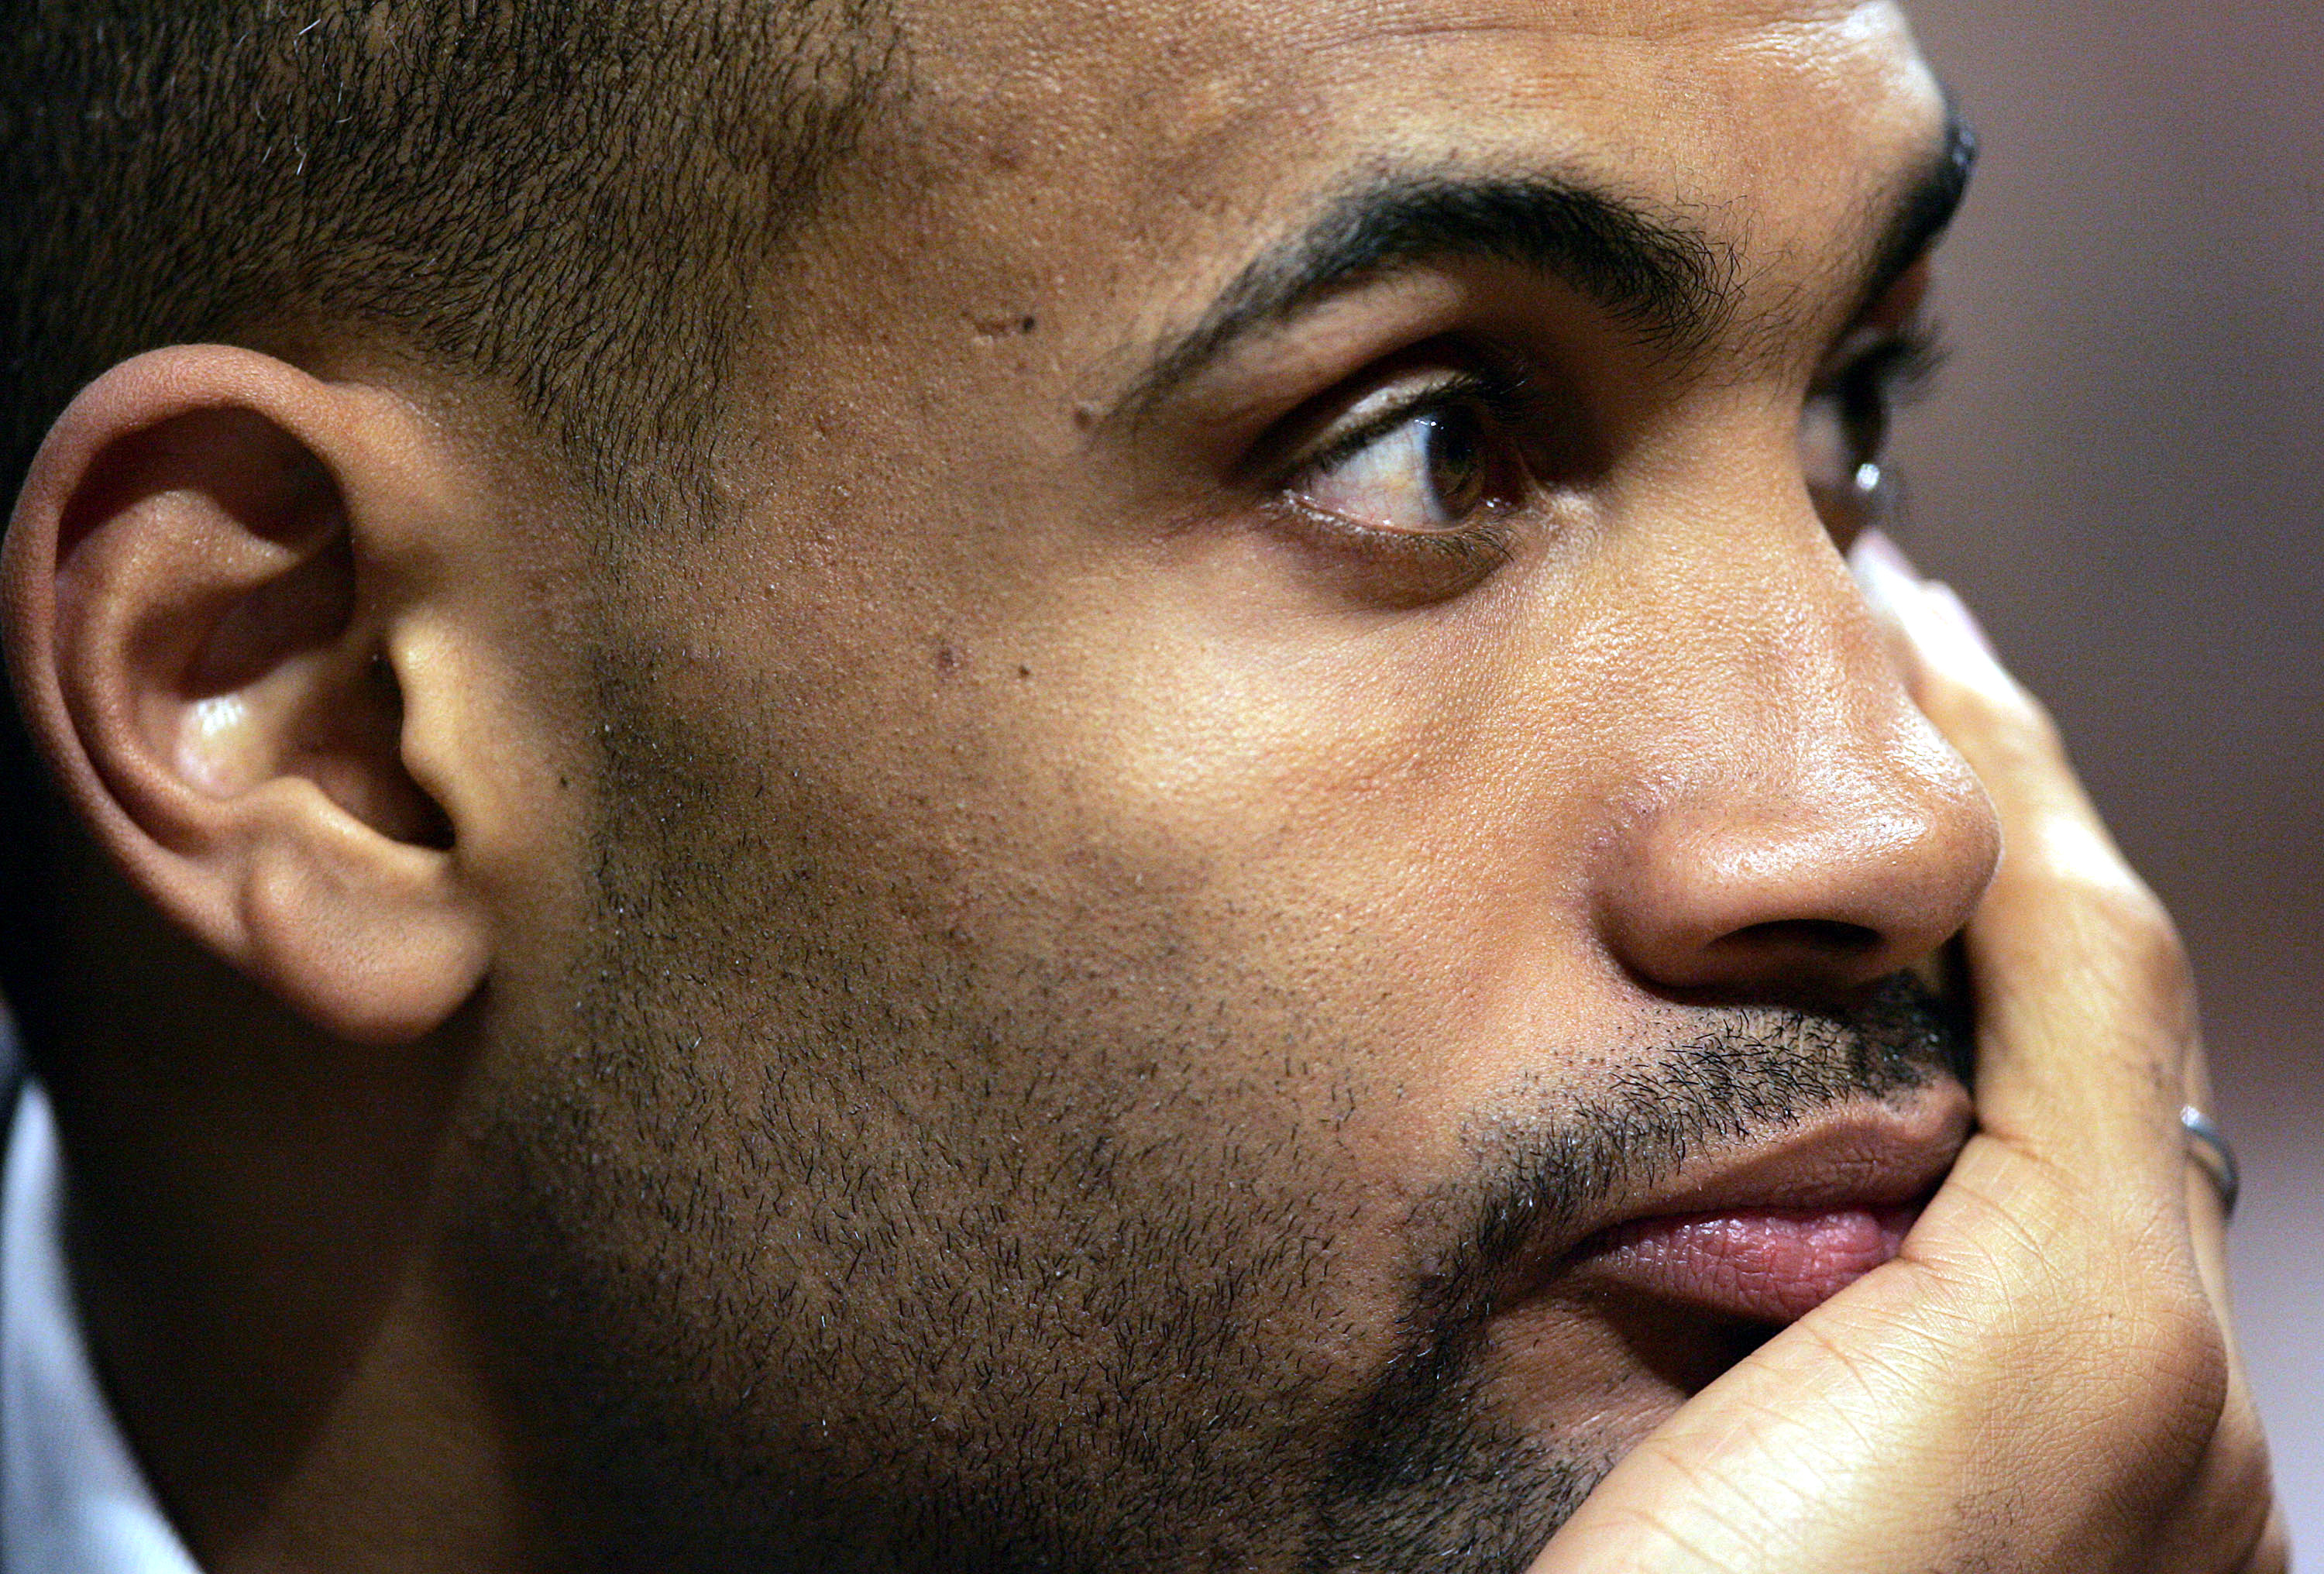 CHICAGO - APRIL 15:  Grant Hill of the Orlando Magic watches his team take on the Chicago Bulls from the bench on April 15, 2005 at the United Center in Chicago, Illinois. The Bulls defeated the Magic 117-77.  NOTE TO USER: User expressly acknowledges and